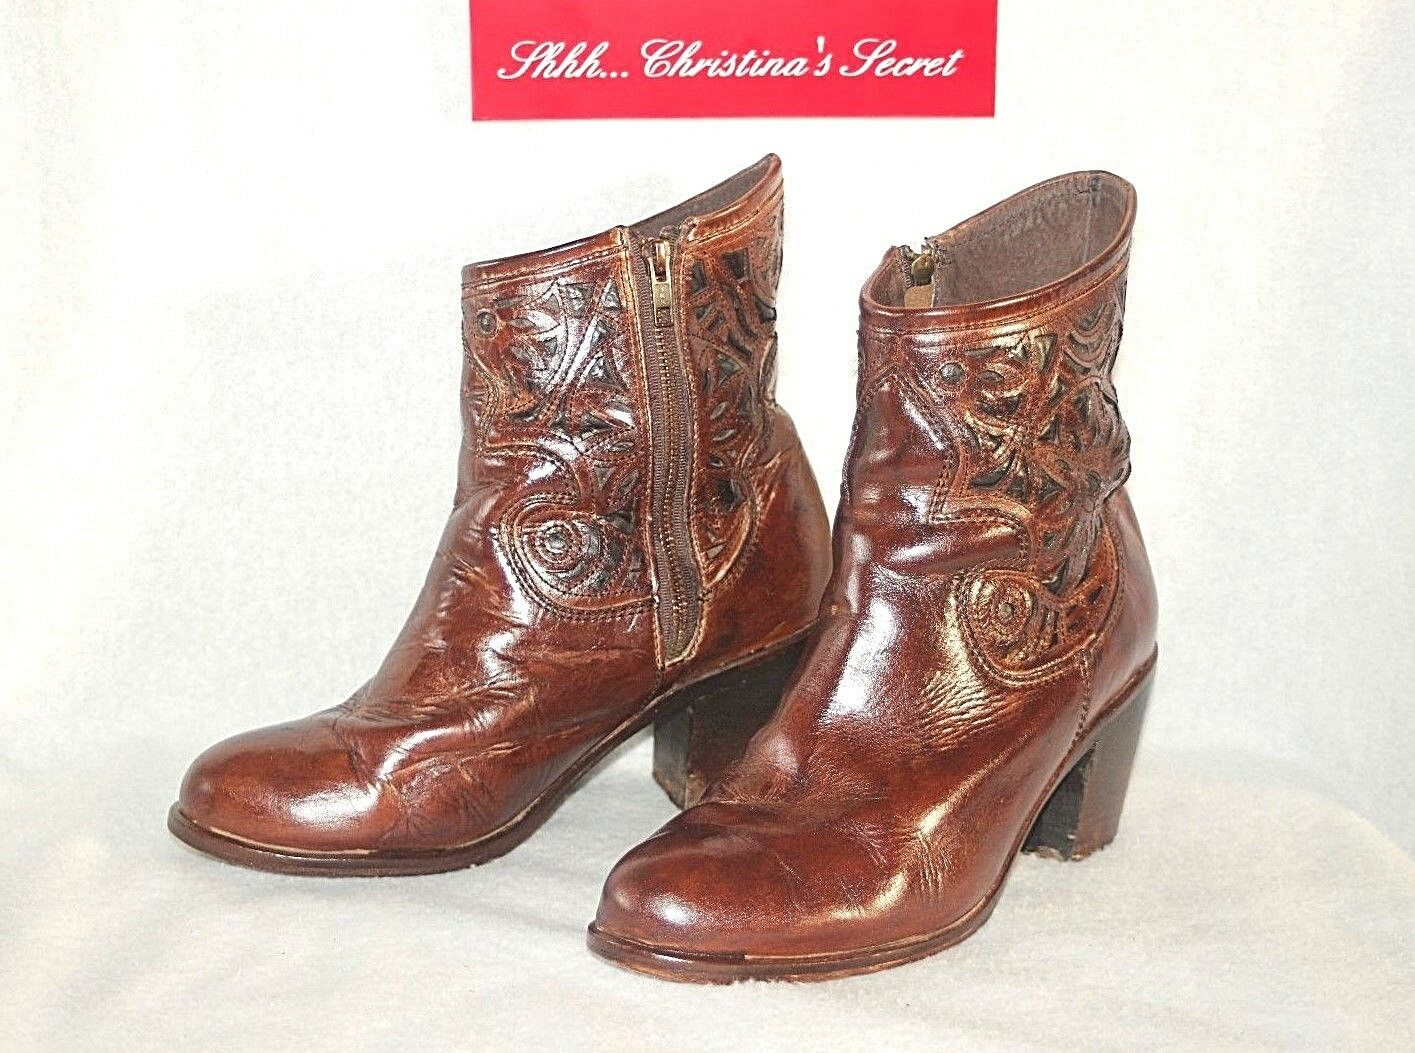 cf1d6e4c0c864 CORRAL BOOTS MEXICO Artisan Handmade Brown Leather Women's Ankle ...